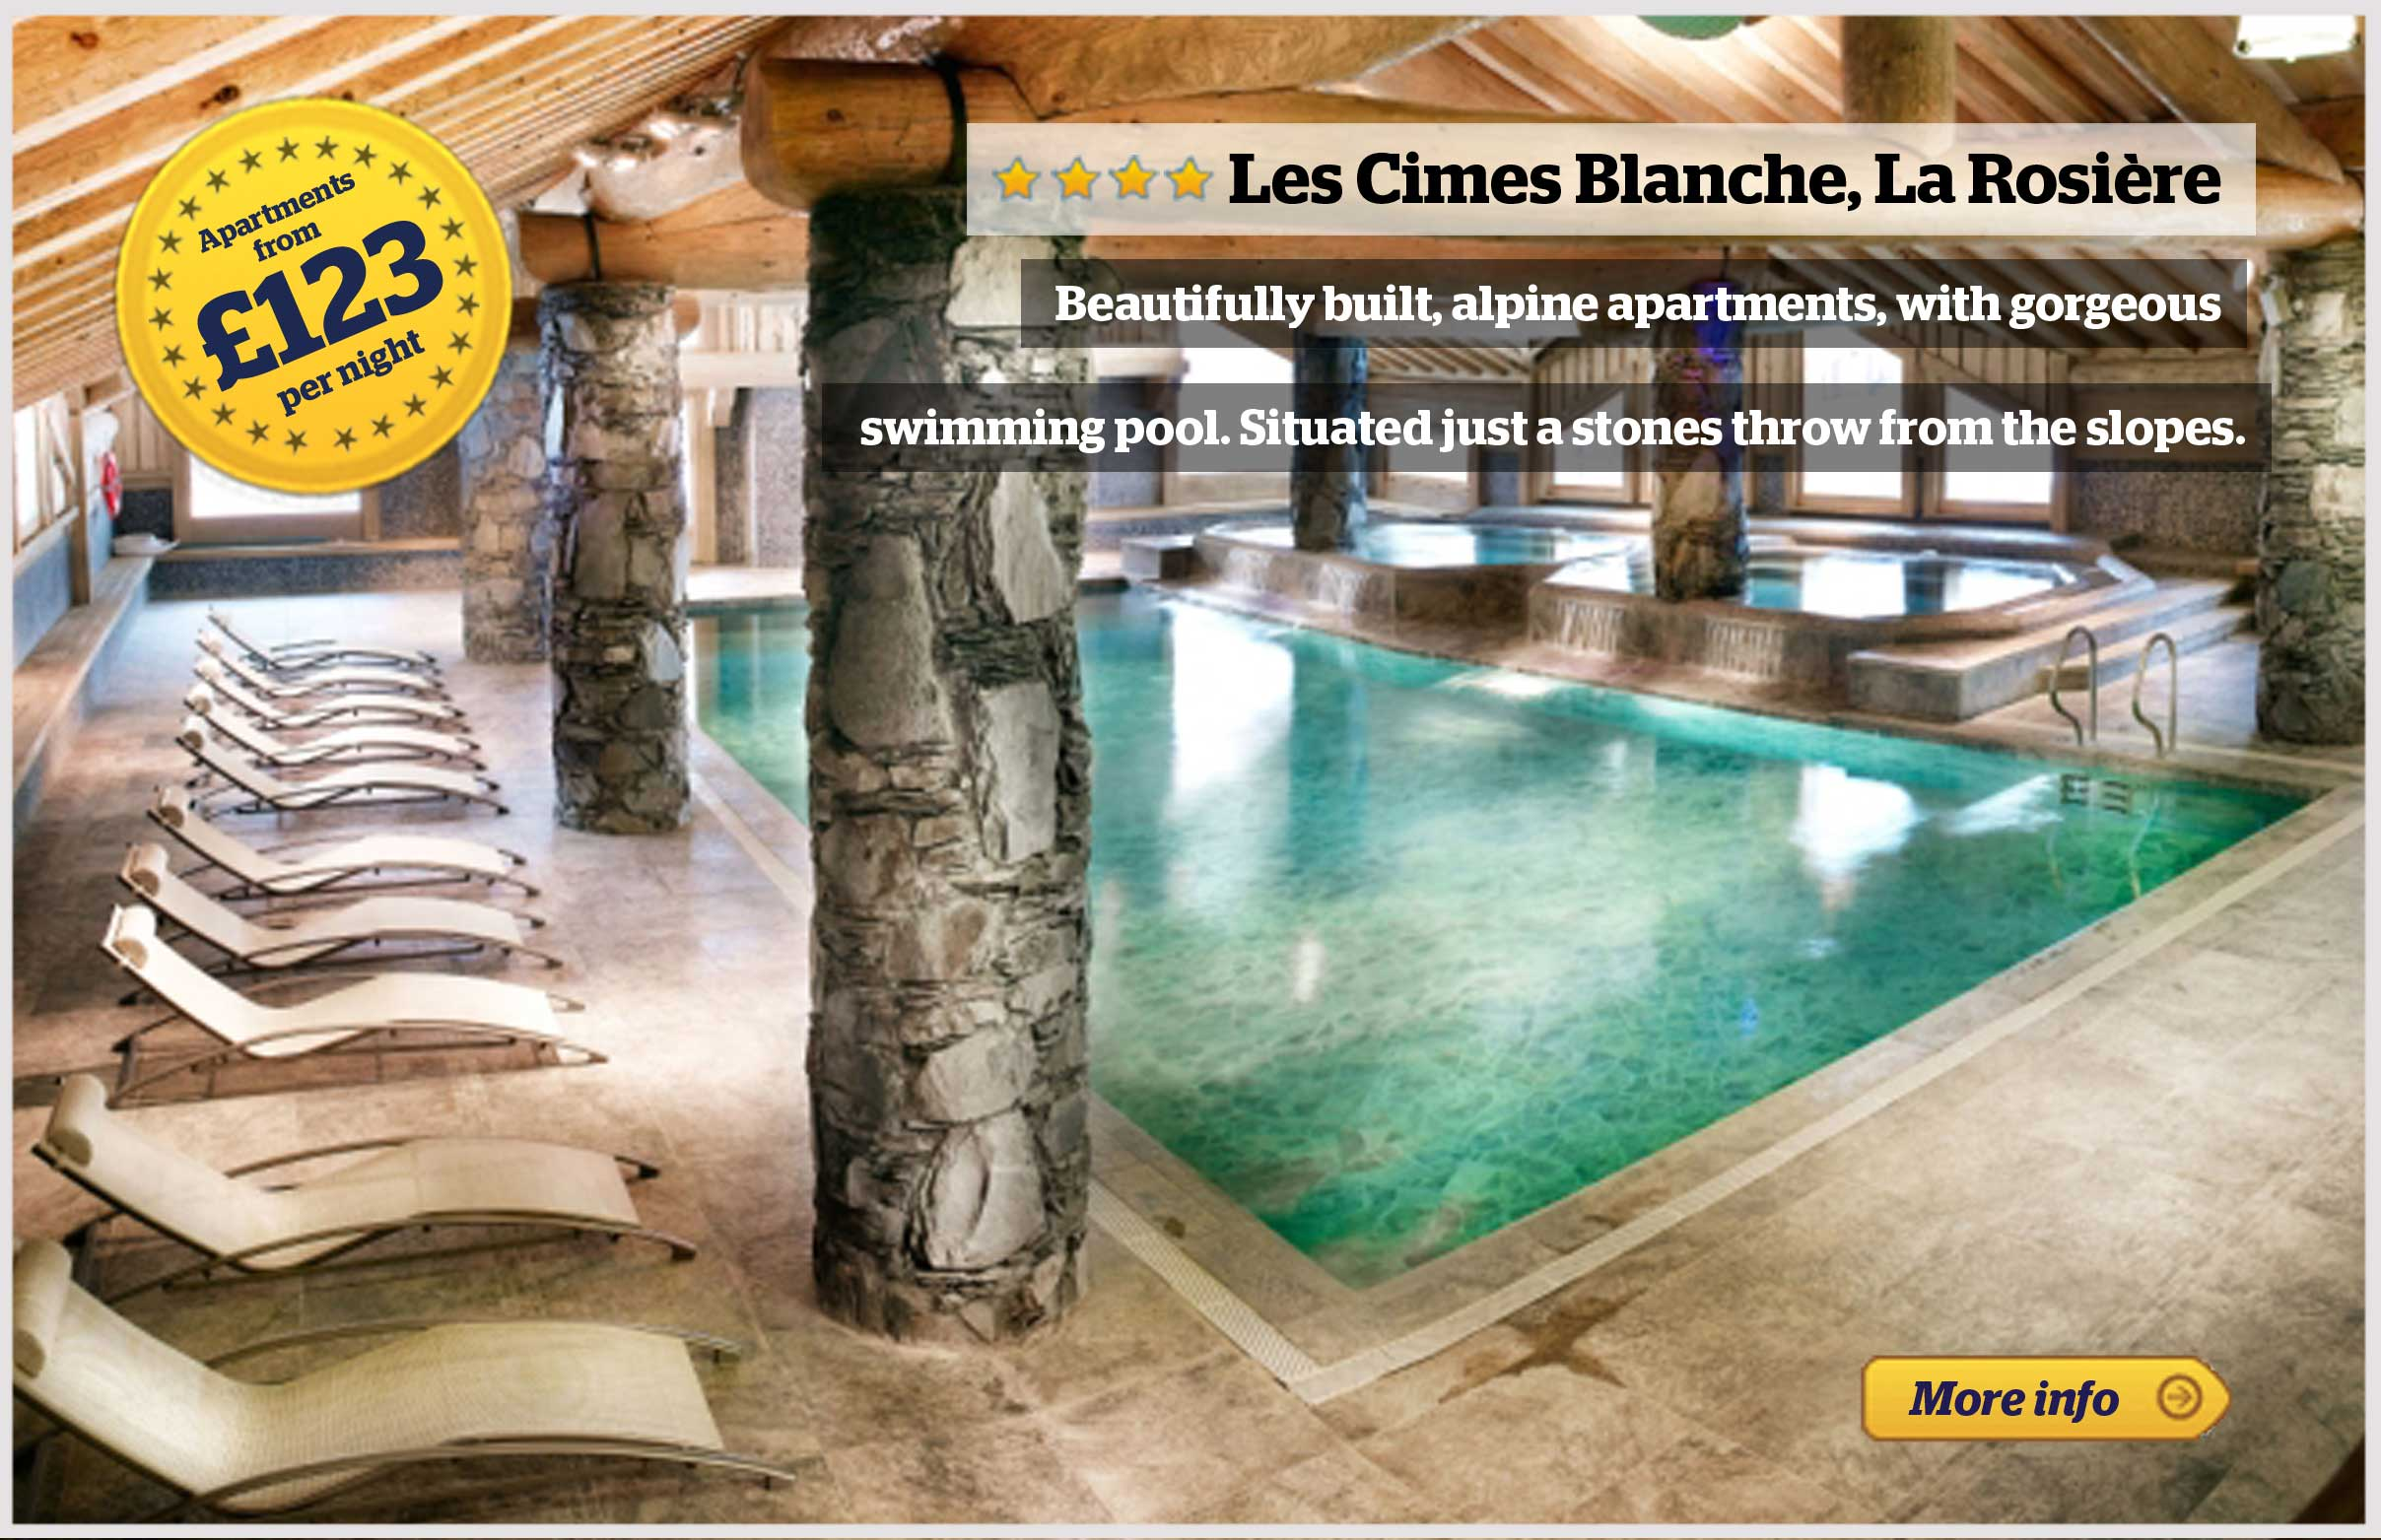 Offer - Les Cimes Blanches, La Rosiere